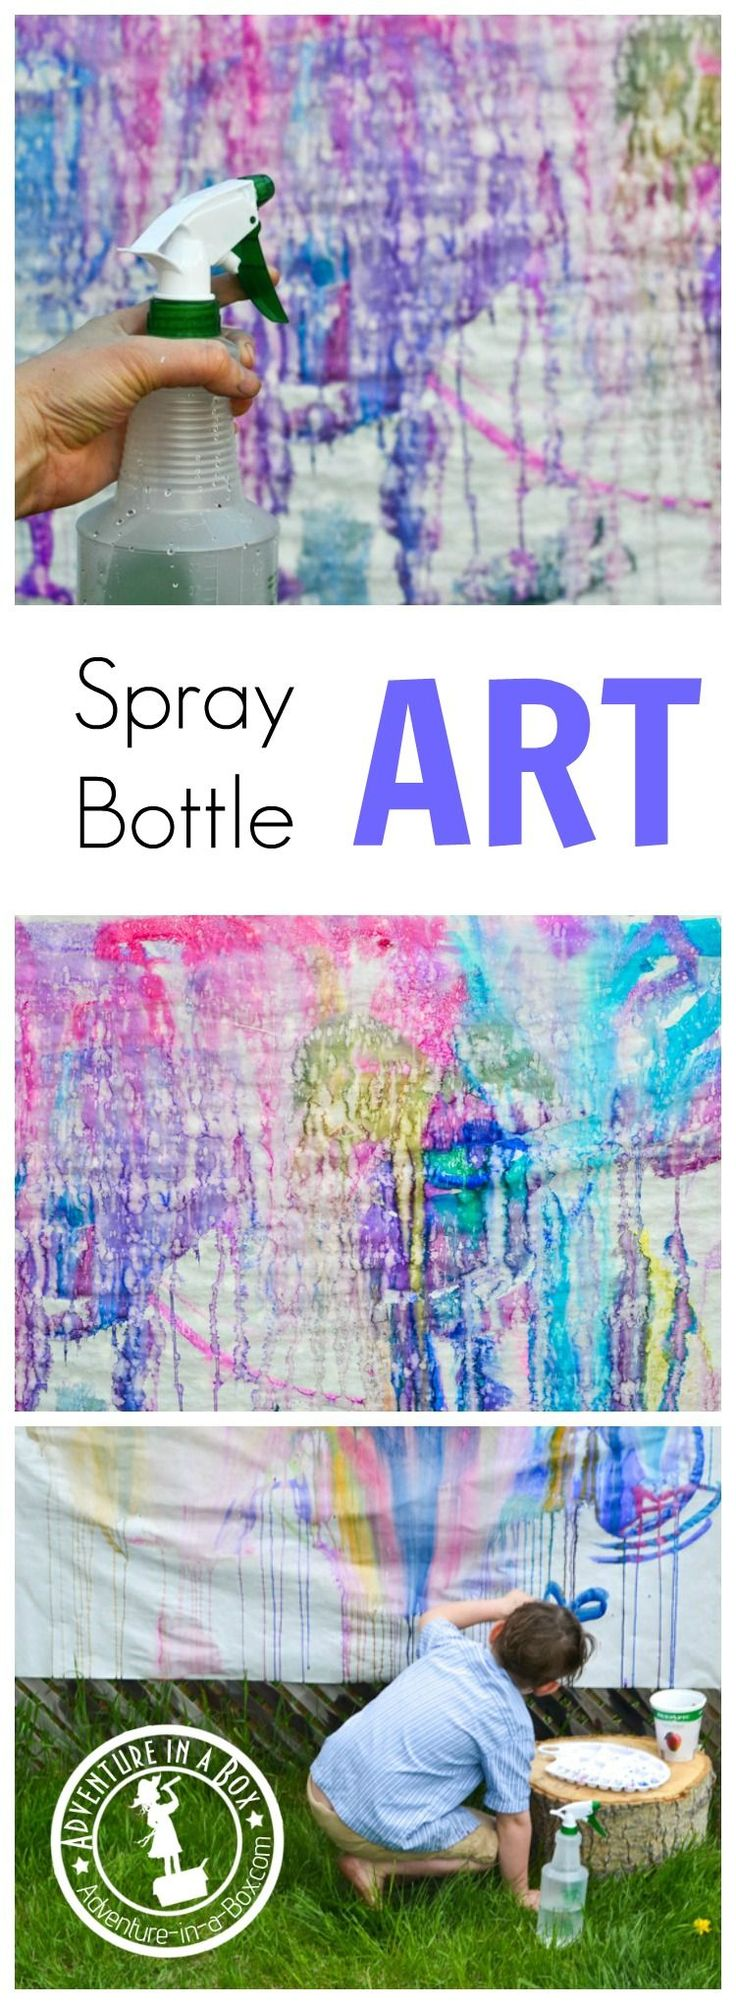 This summer, try this outdoor activity with kids - making spray bottle art in your backyard! Tons of fun and no mess.